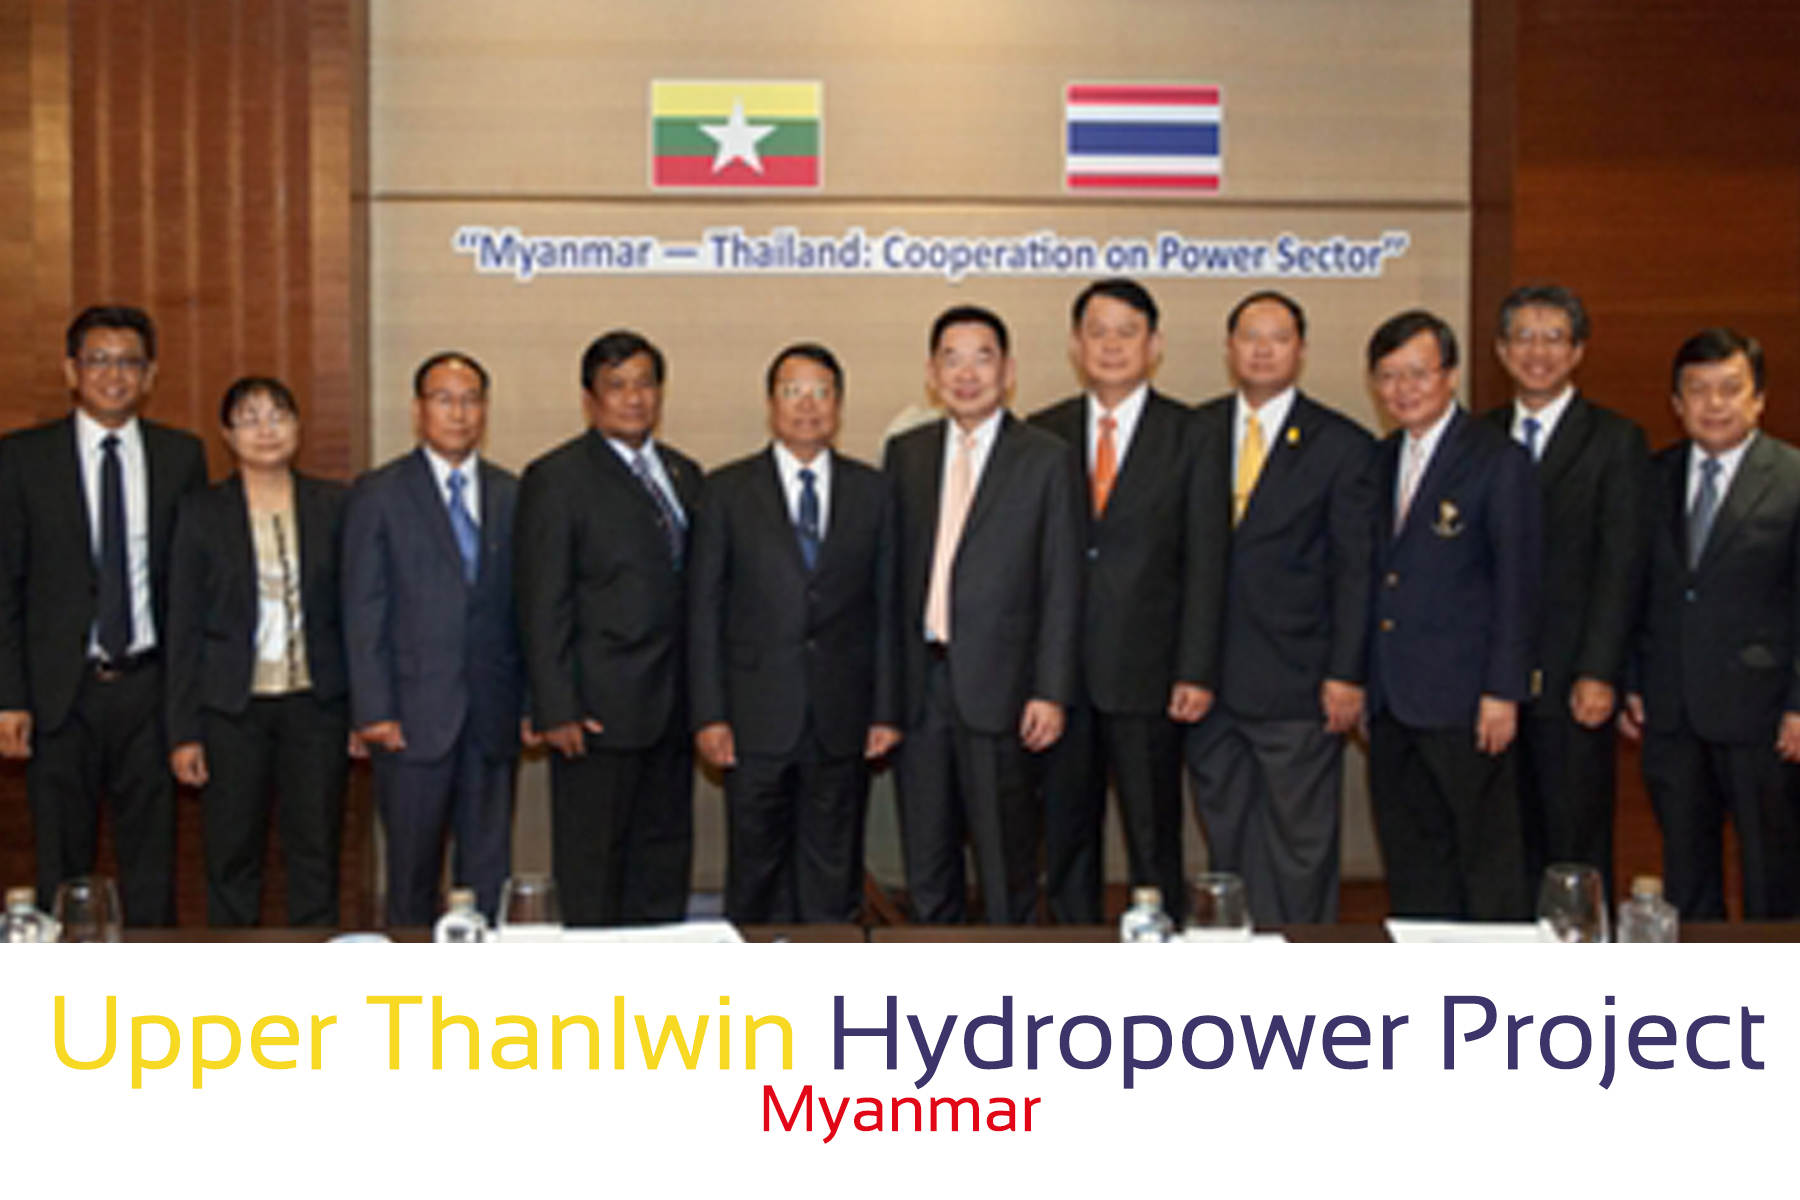 Upper Thanlwin Hydropower Project Myanma